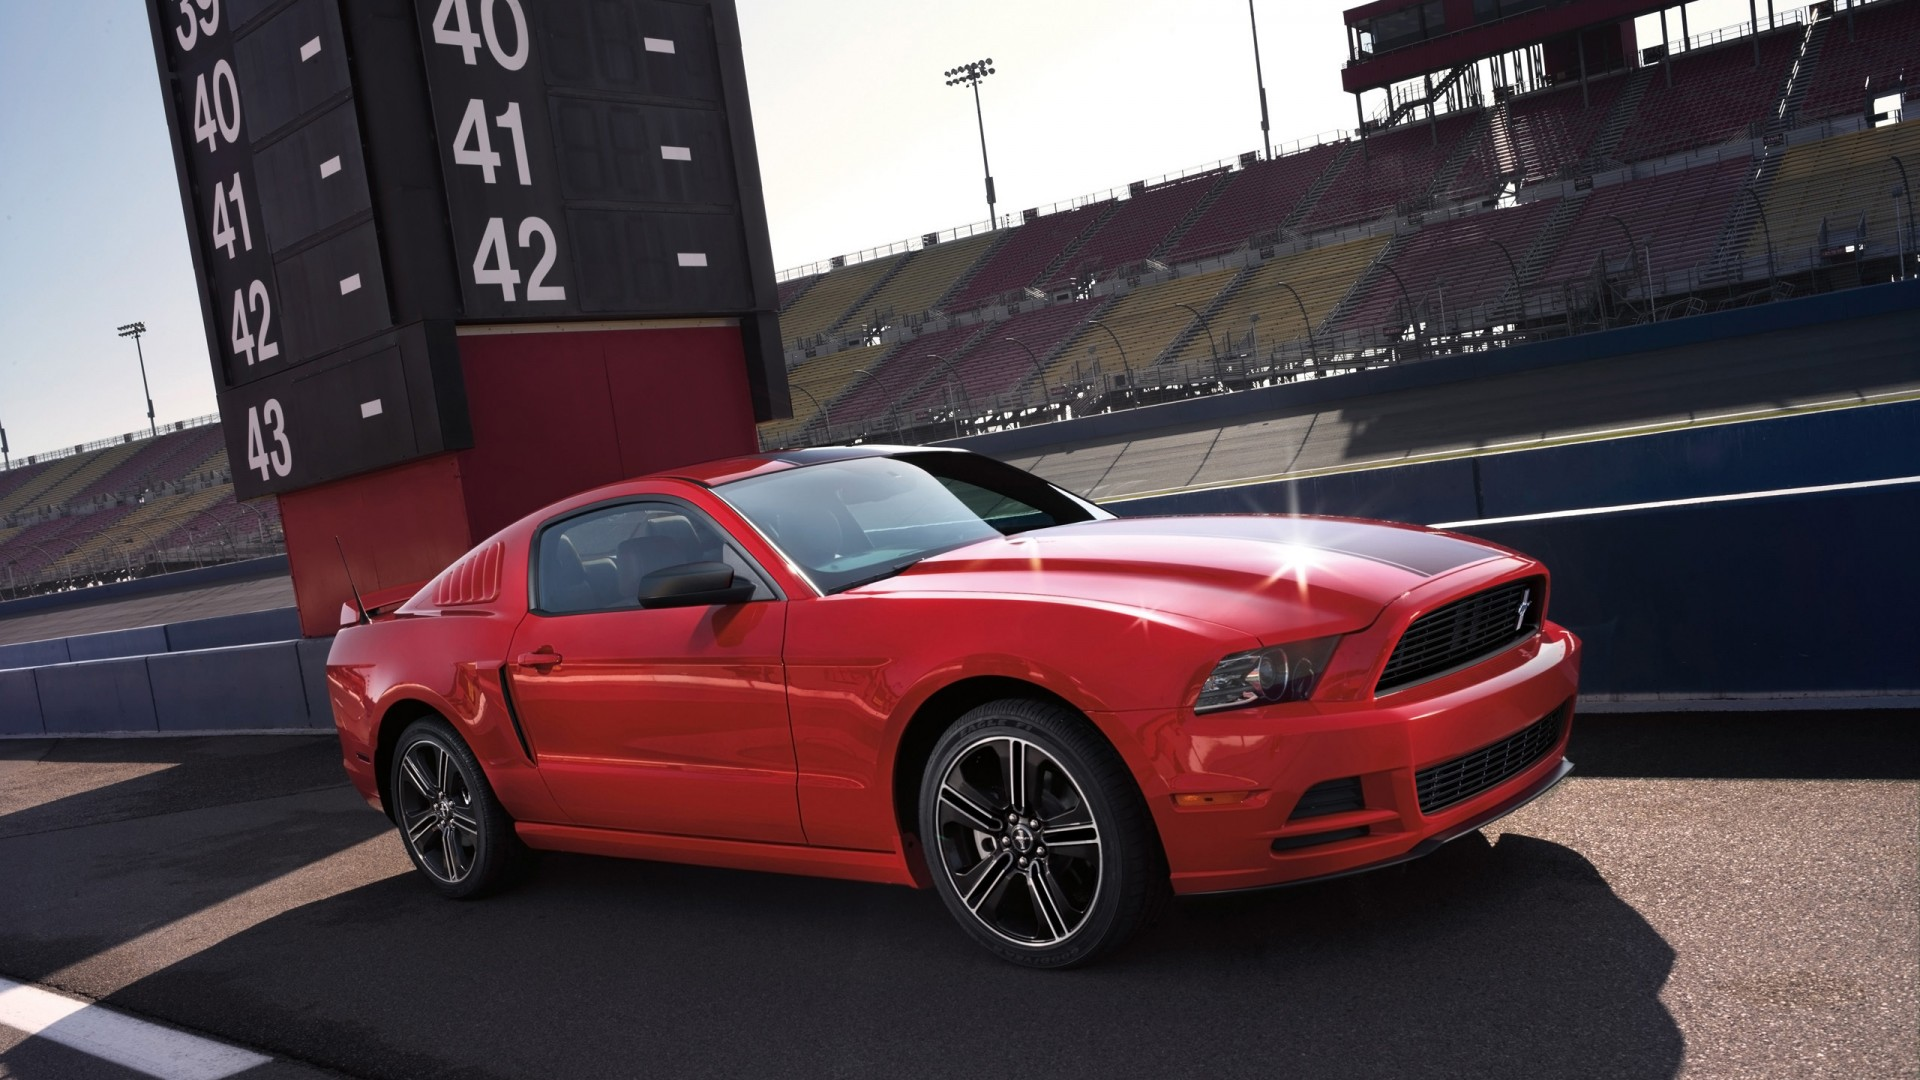 White Mercedes Benz >> 2014 Ford Mustang GT Wallpaper | HD Car Wallpapers | ID #3913